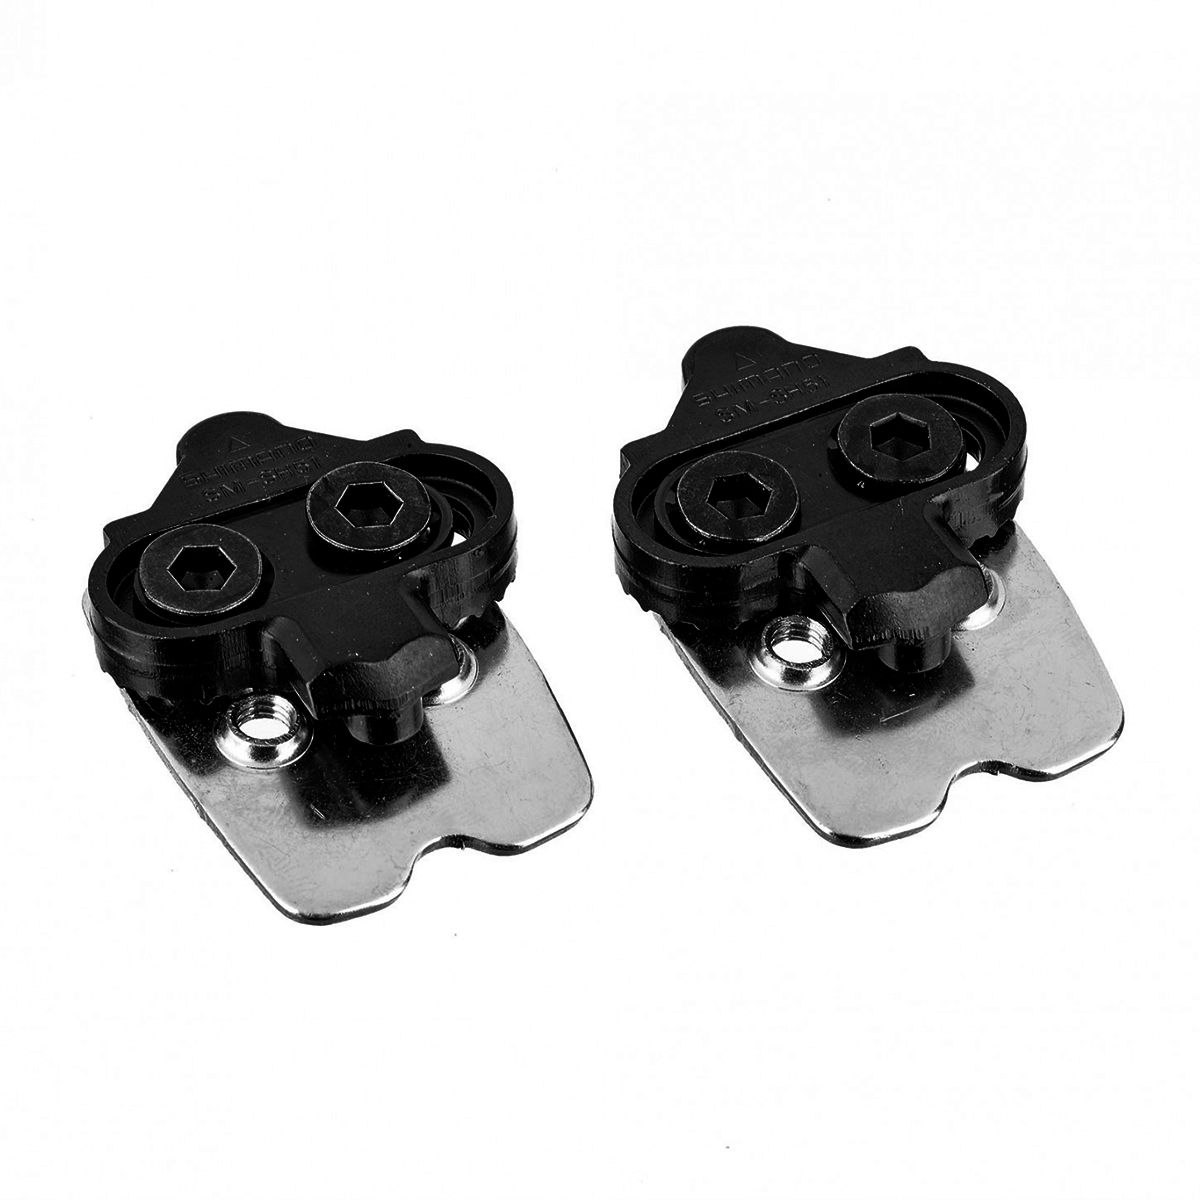 SM-SH 51 SPD cleats incl. threaded backing plate